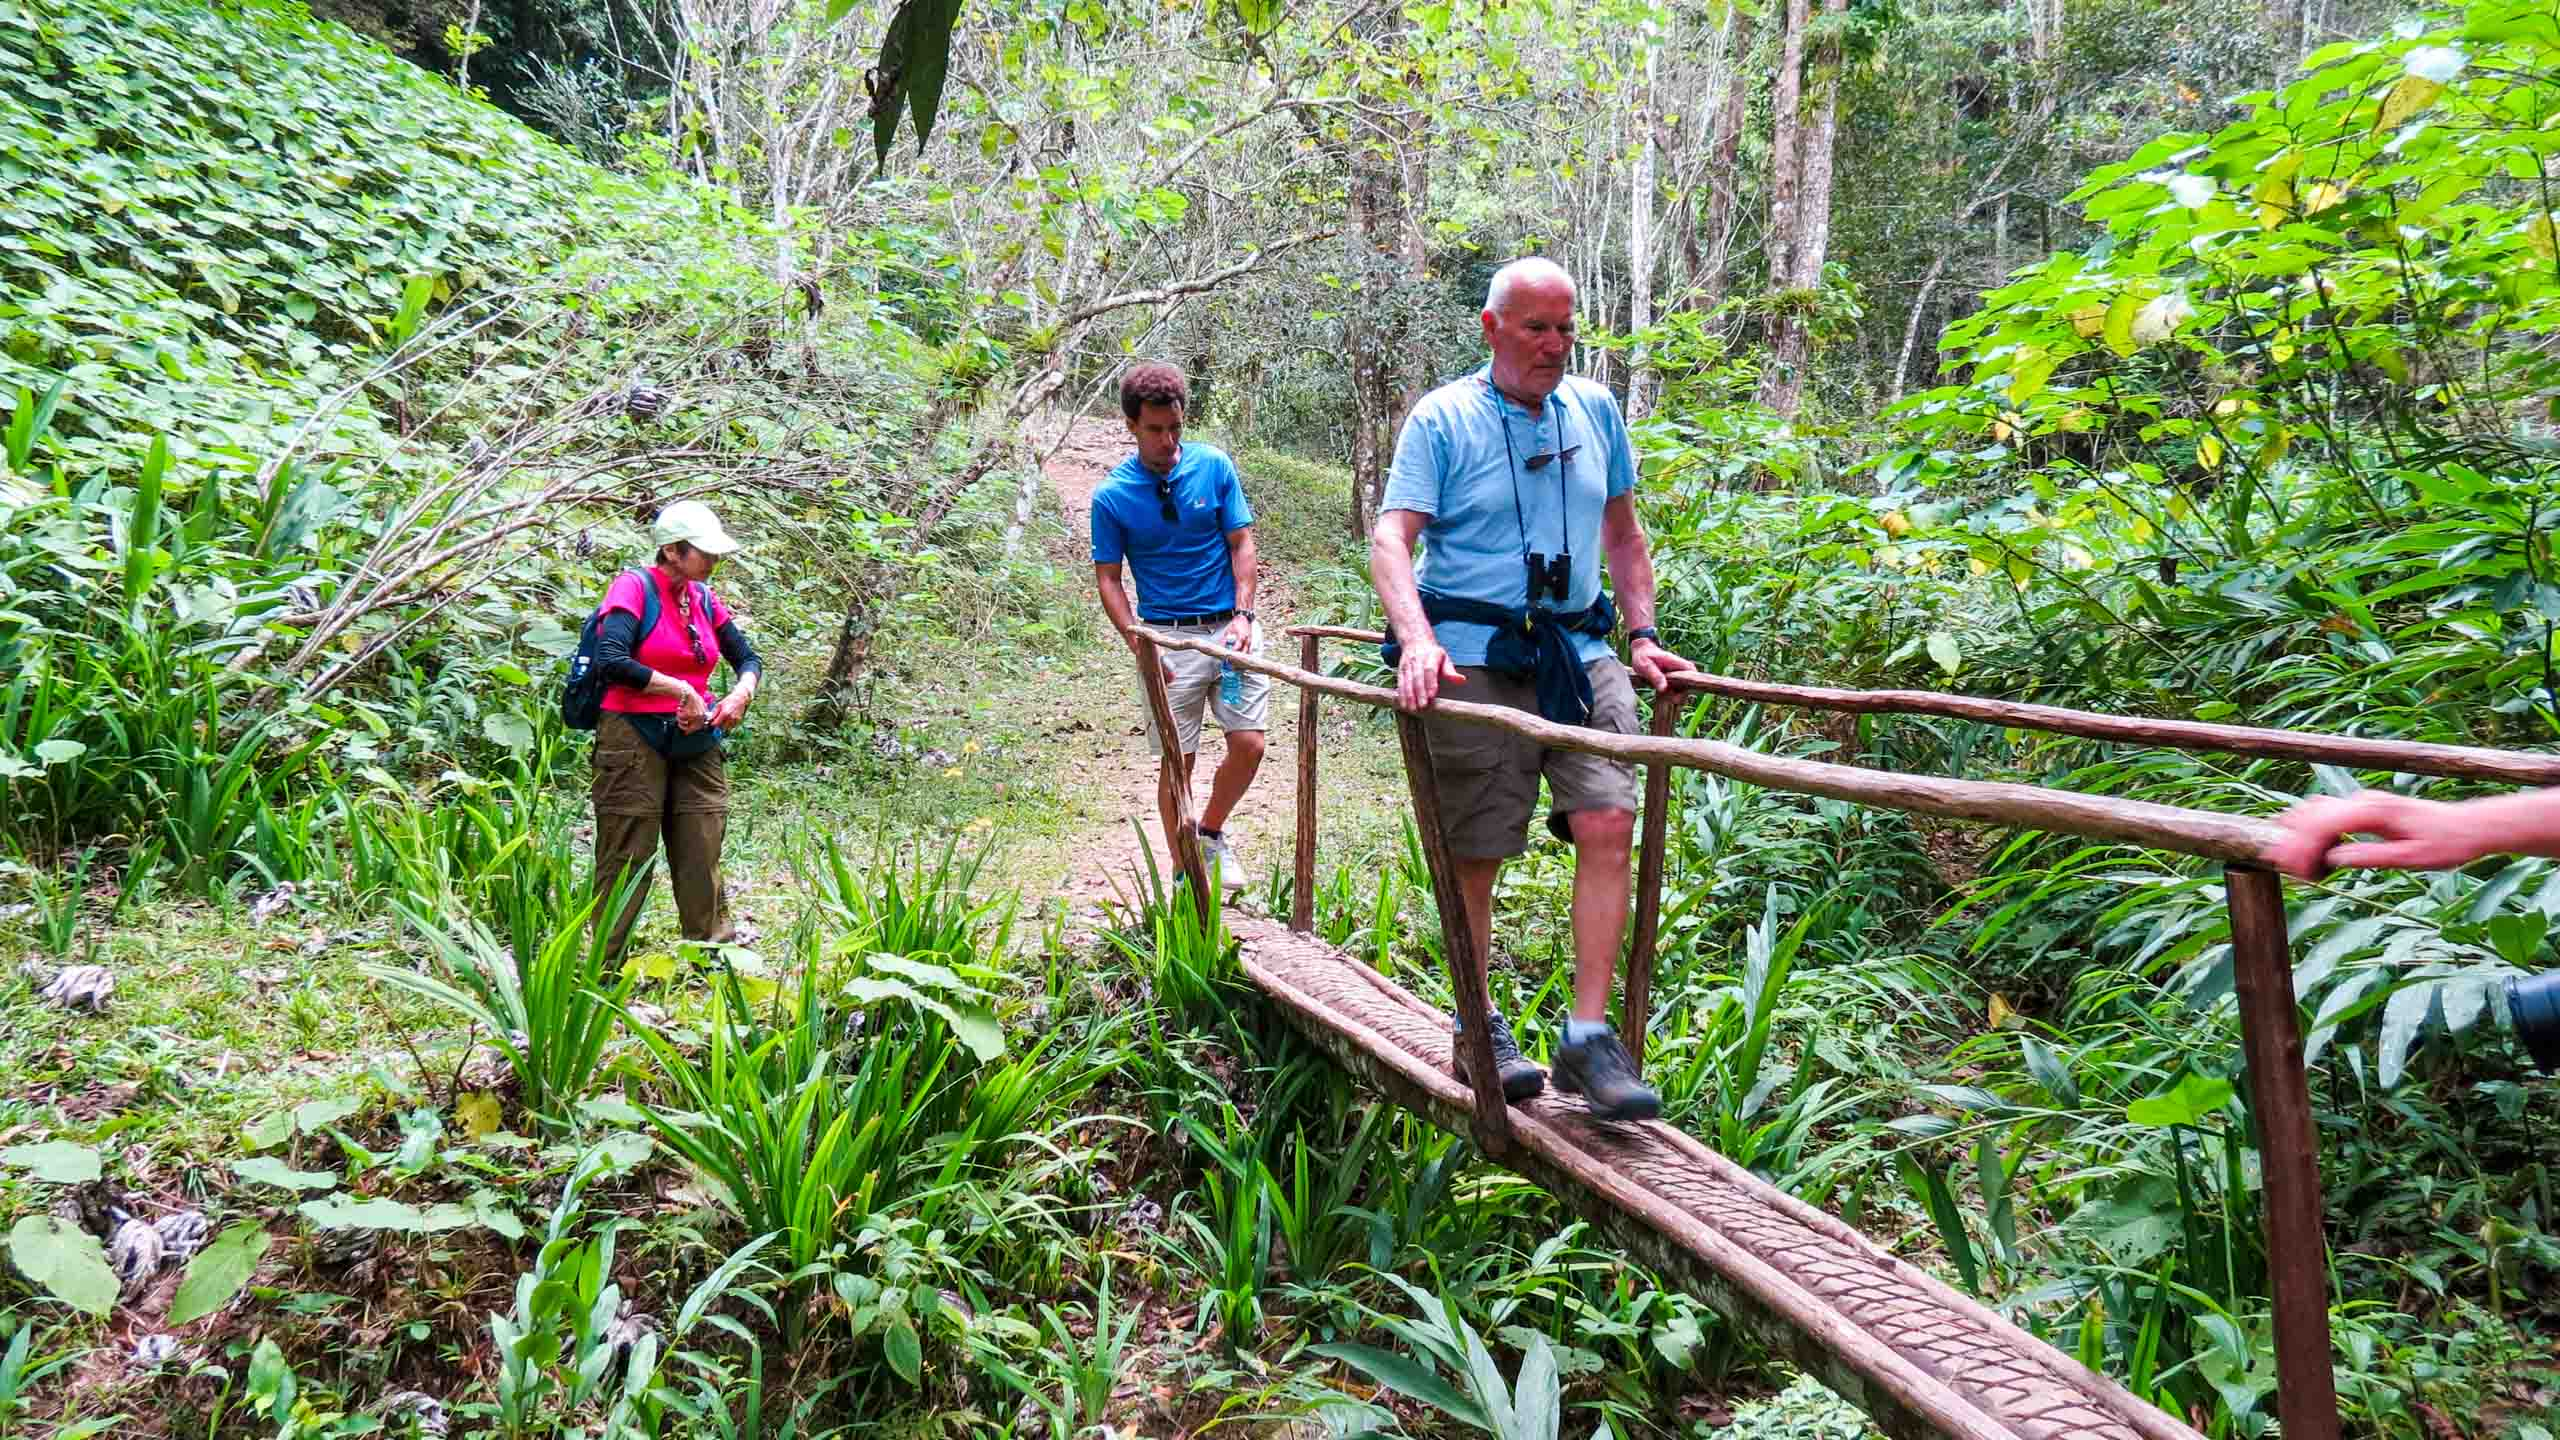 Travelers hike through Cuba forest